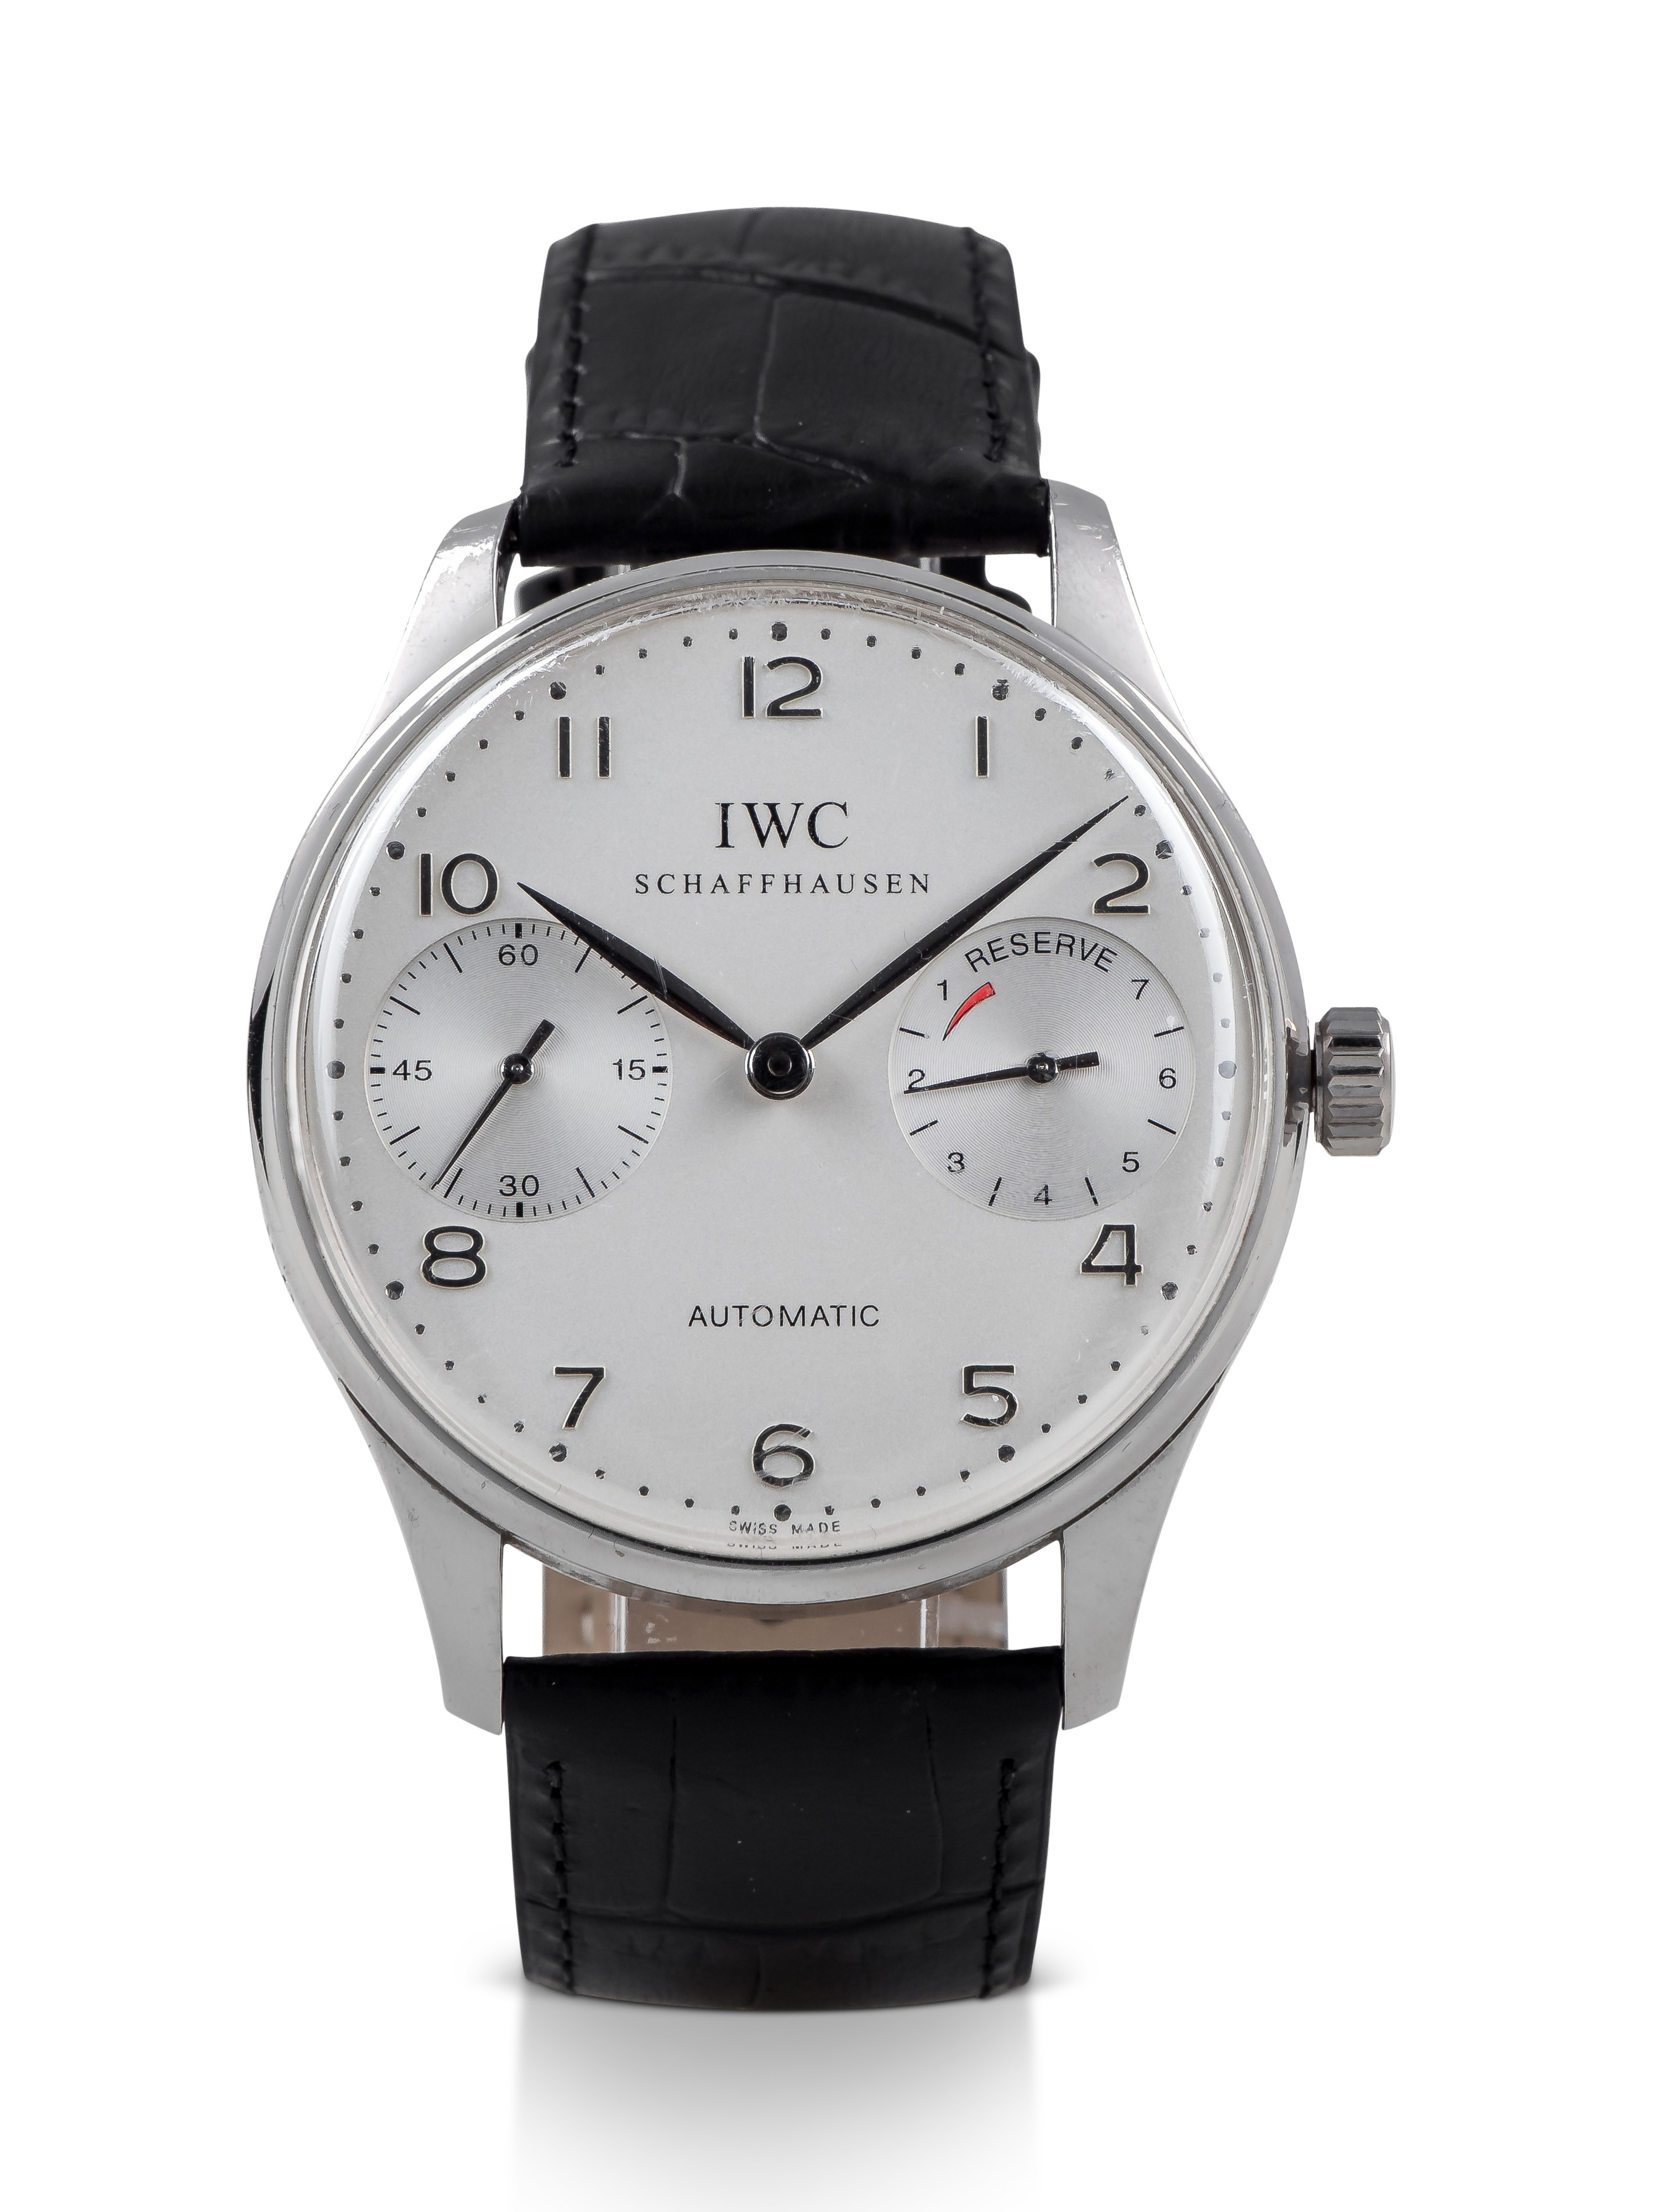 IWC | PORTUGIESER AUTOMATIK 2000, REF 5000 LIMITED EDITION PLATINUM WRISTWATCH WITH POWER RESERVE INDICATION CIRCA 2000